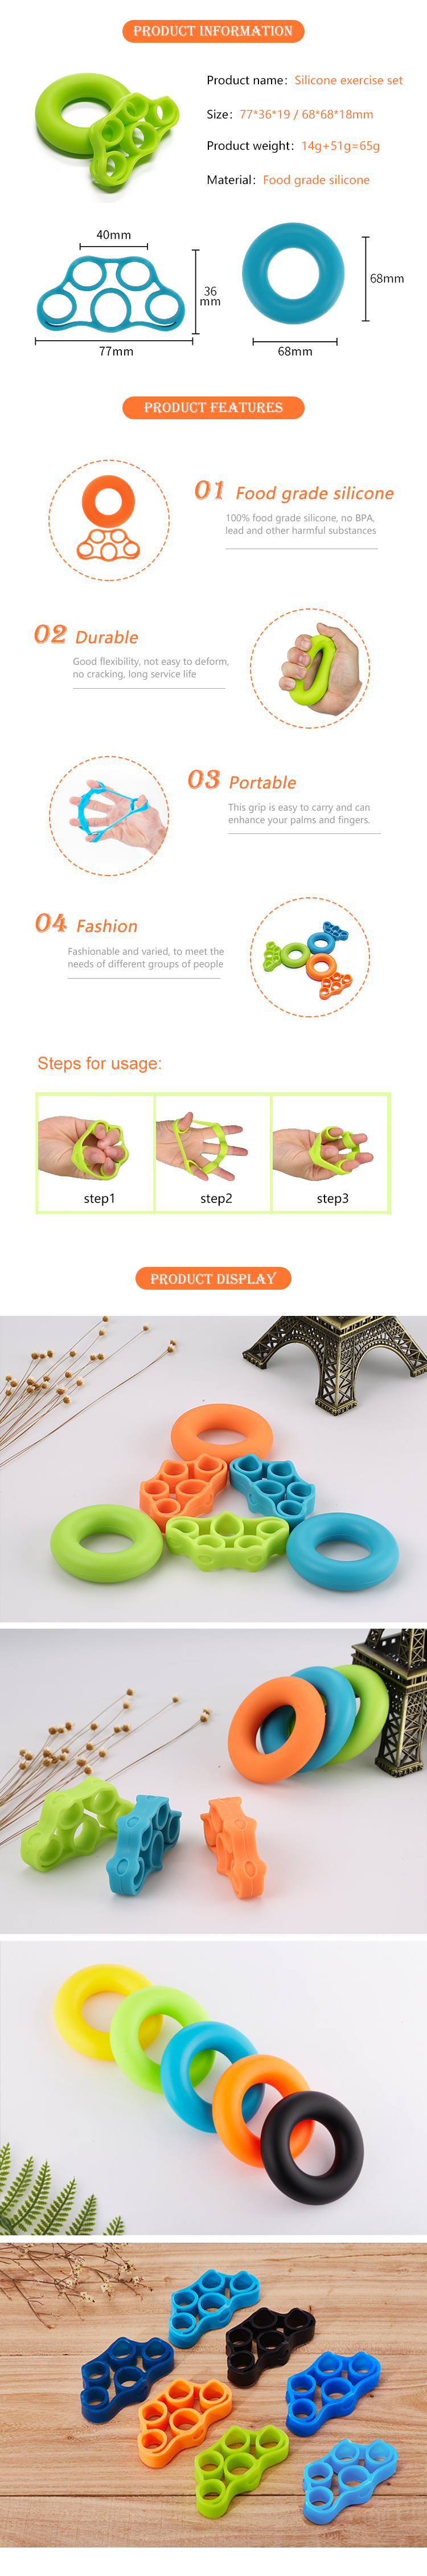 Factory Price Silicone Body Fitness exercise set fingers gripper hand strenthener sets